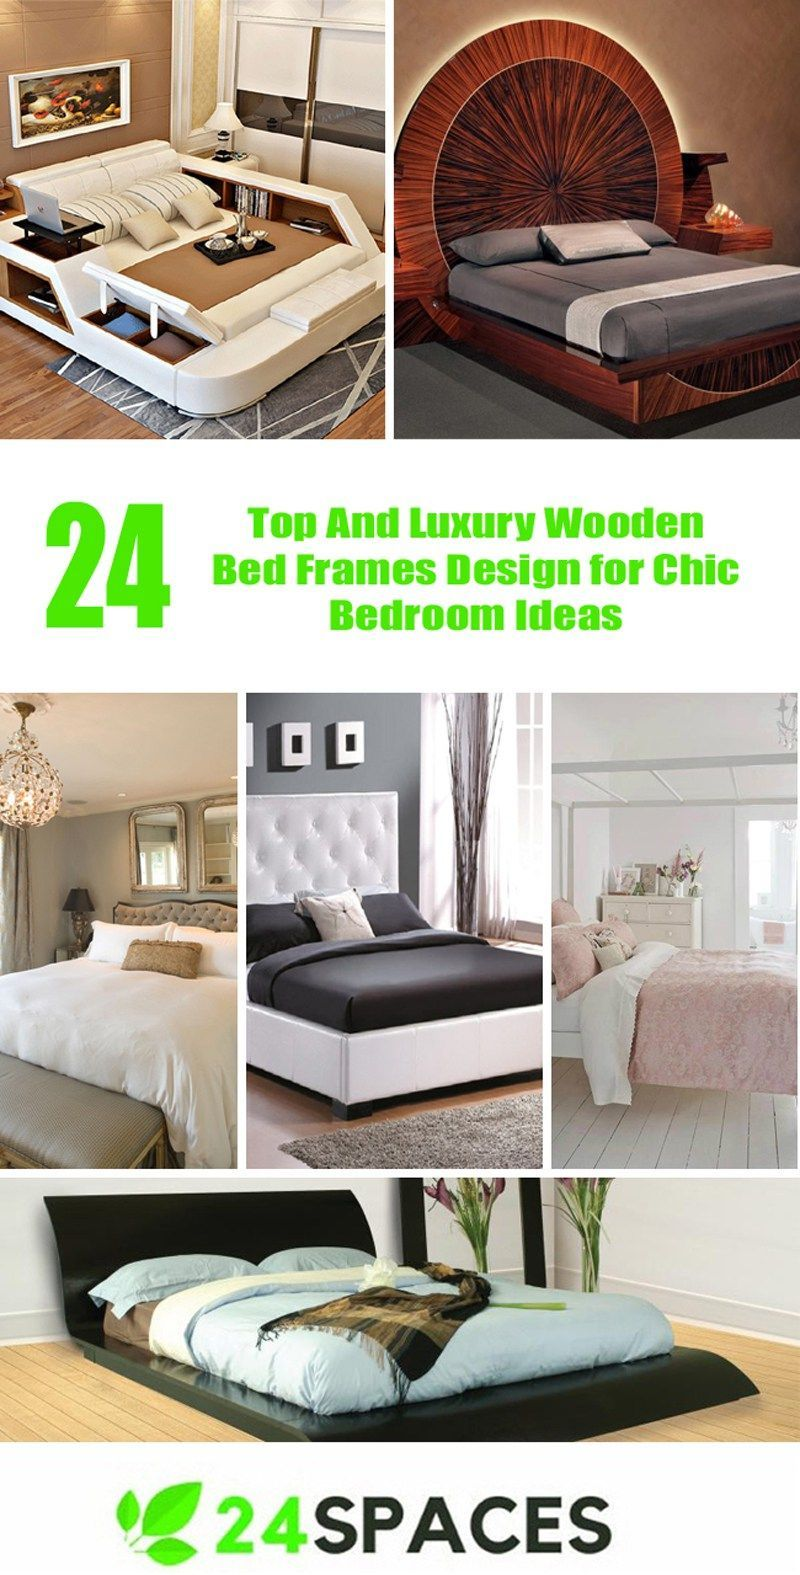 Top And Luxury Wooden Bed Frames Design For Chic Bedroom Ideas